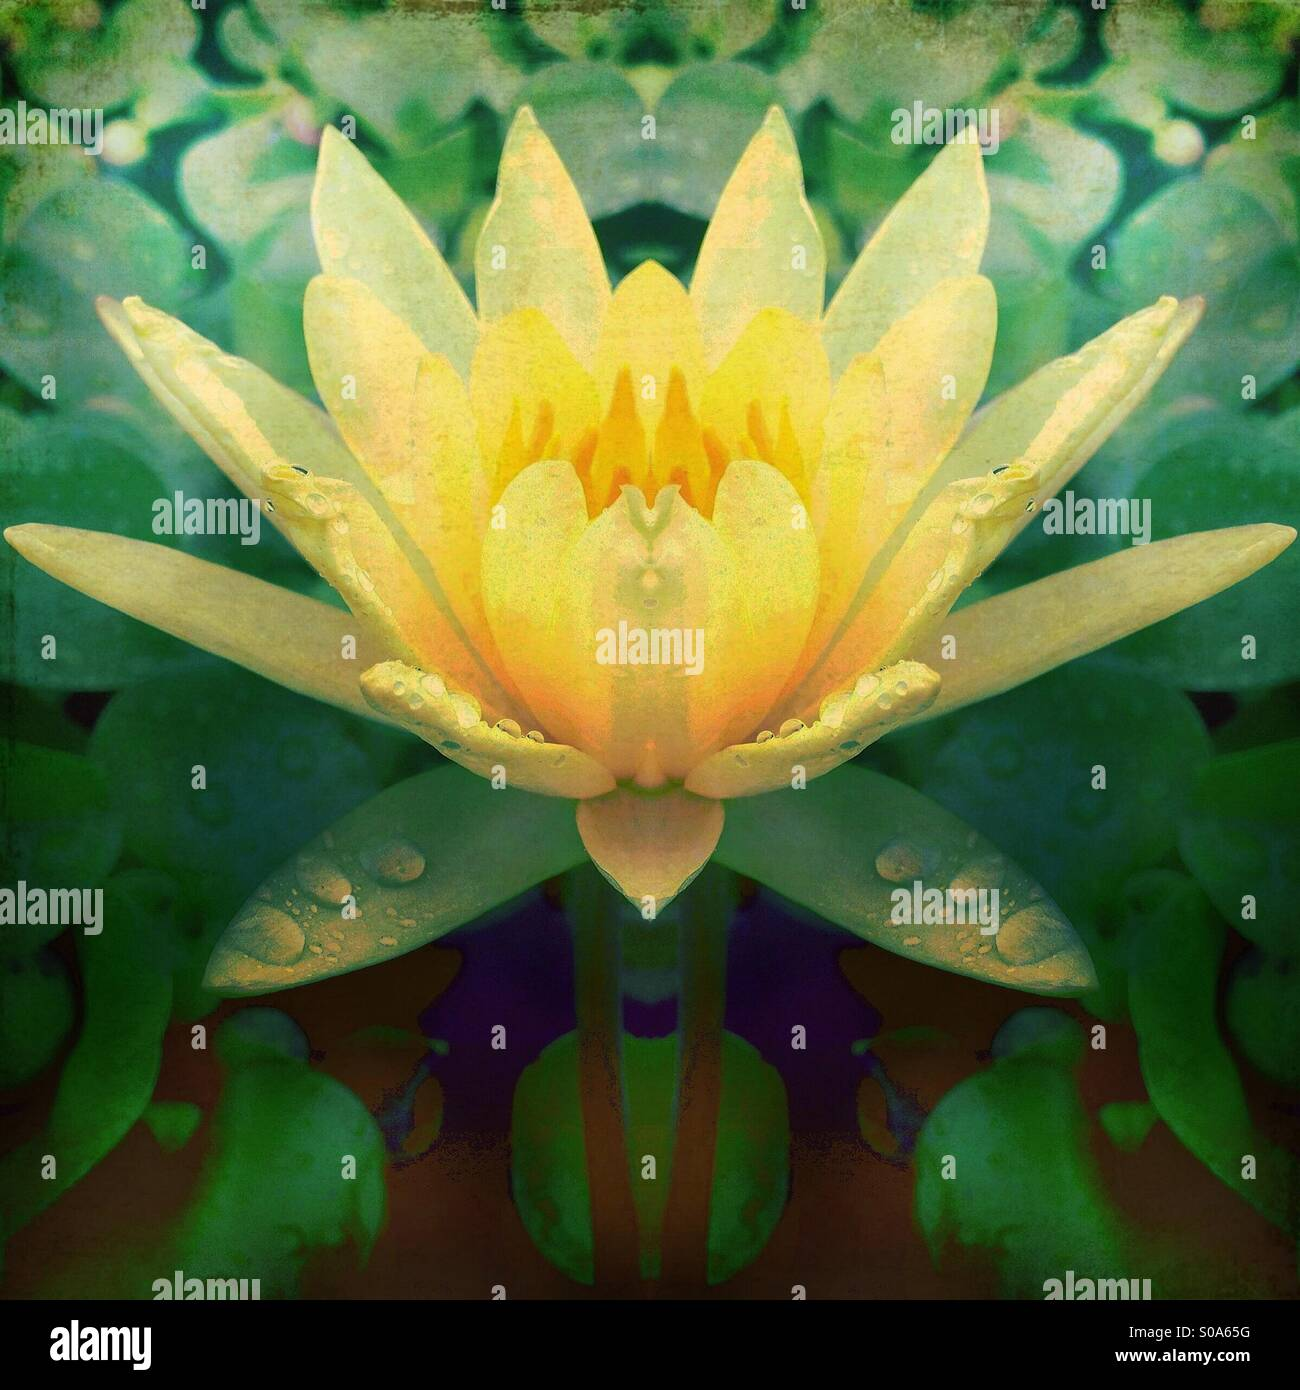 Yellow flower with lily pads stock photo 310011004 alamy yellow flower with lily pads izmirmasajfo Images